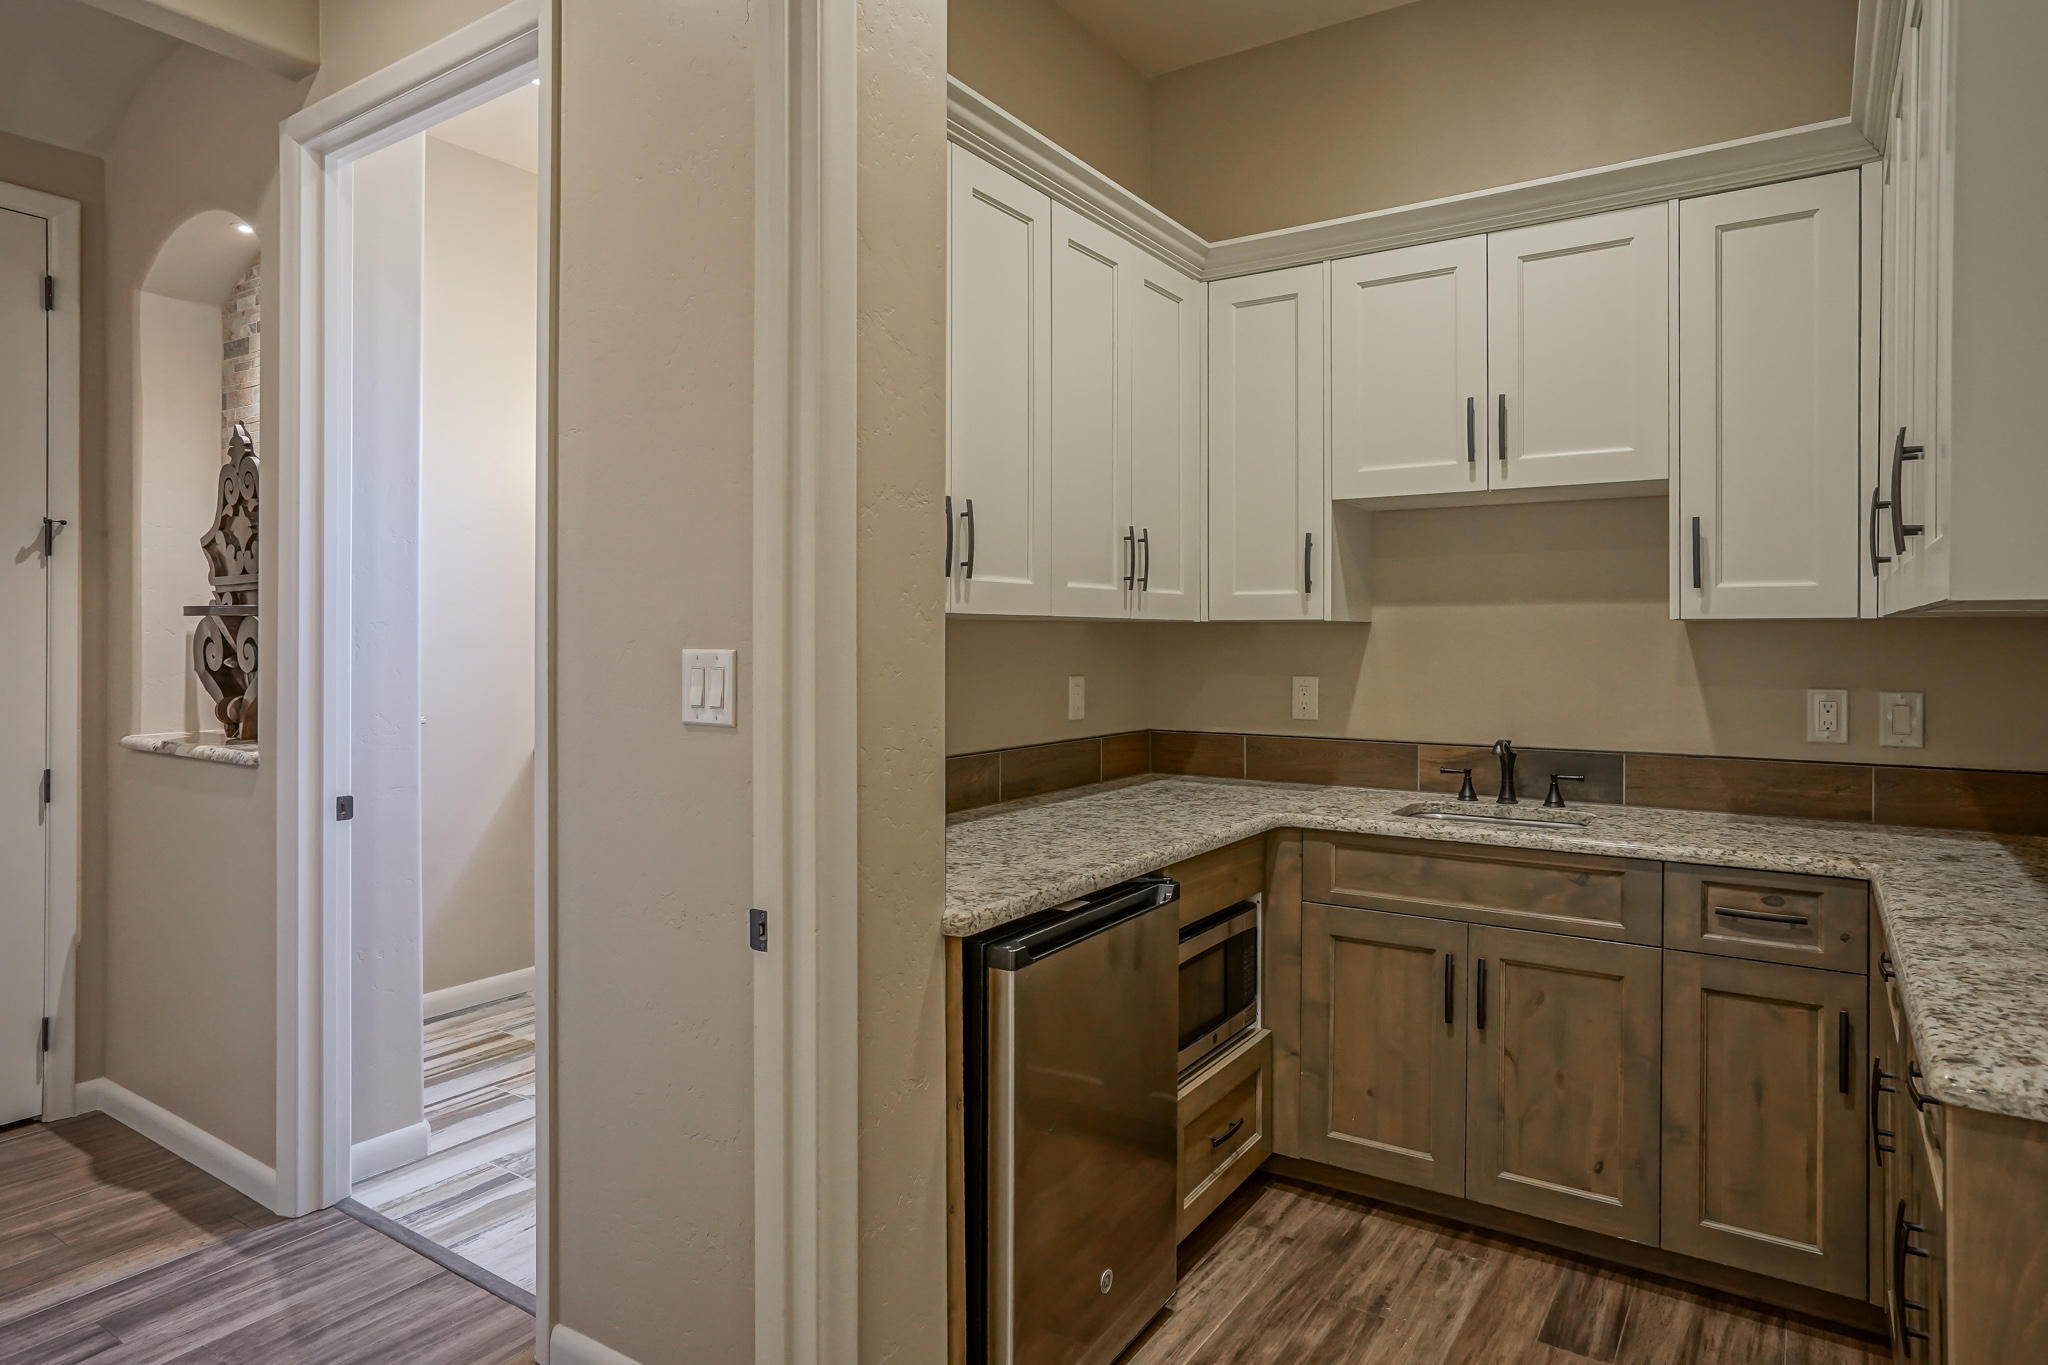 Kitchenette for Office/In-Law